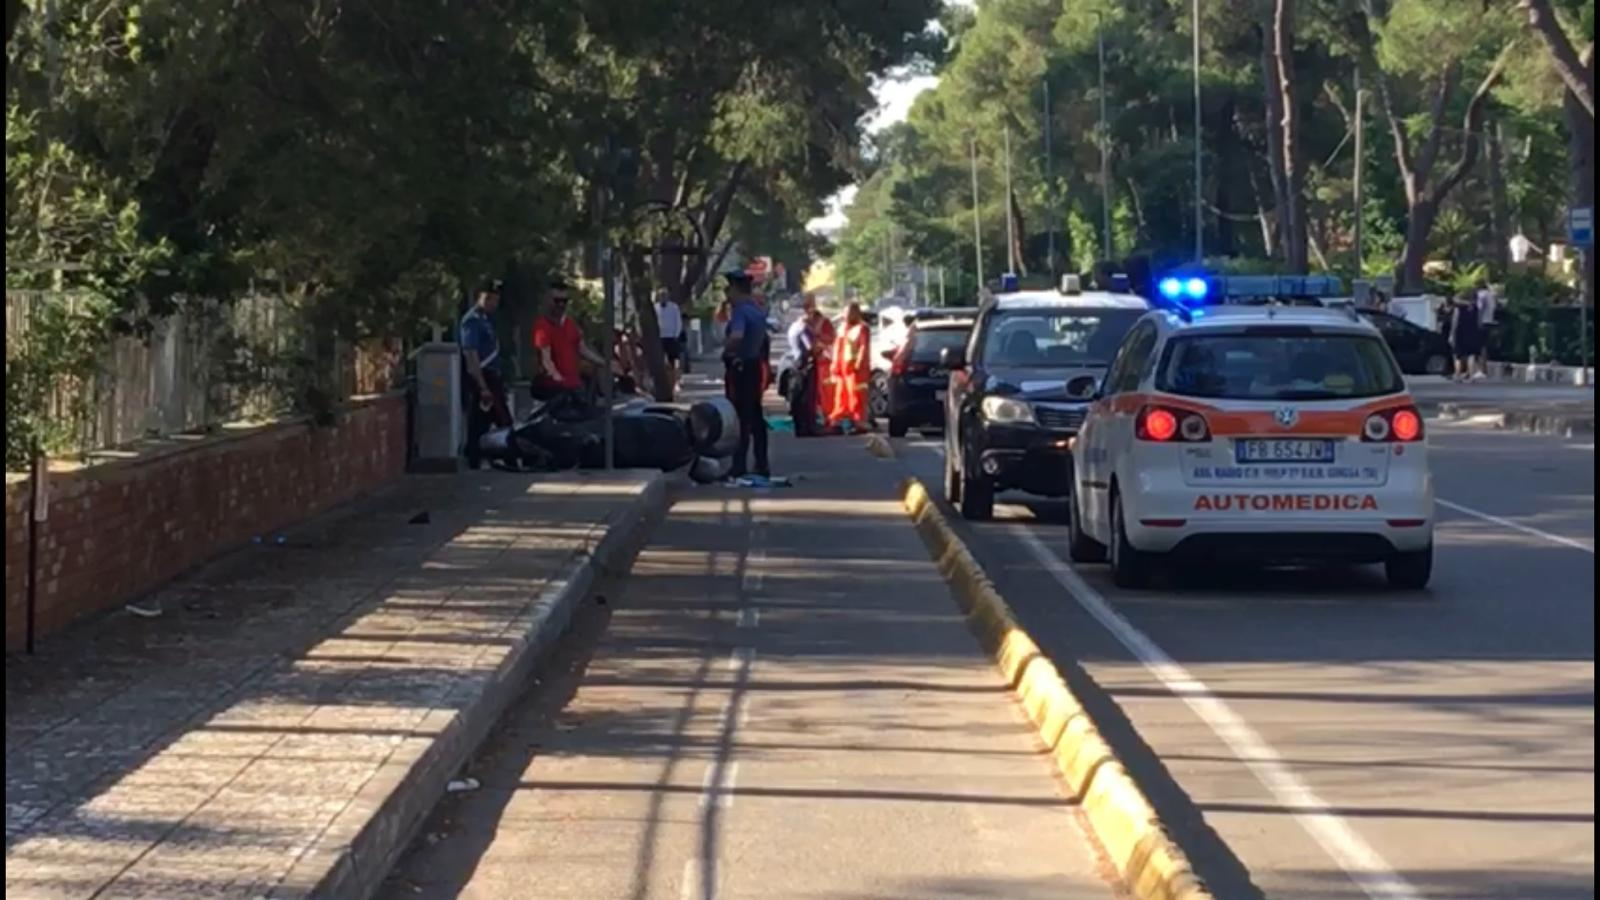 Tragico incidente a Castellaneta Marina